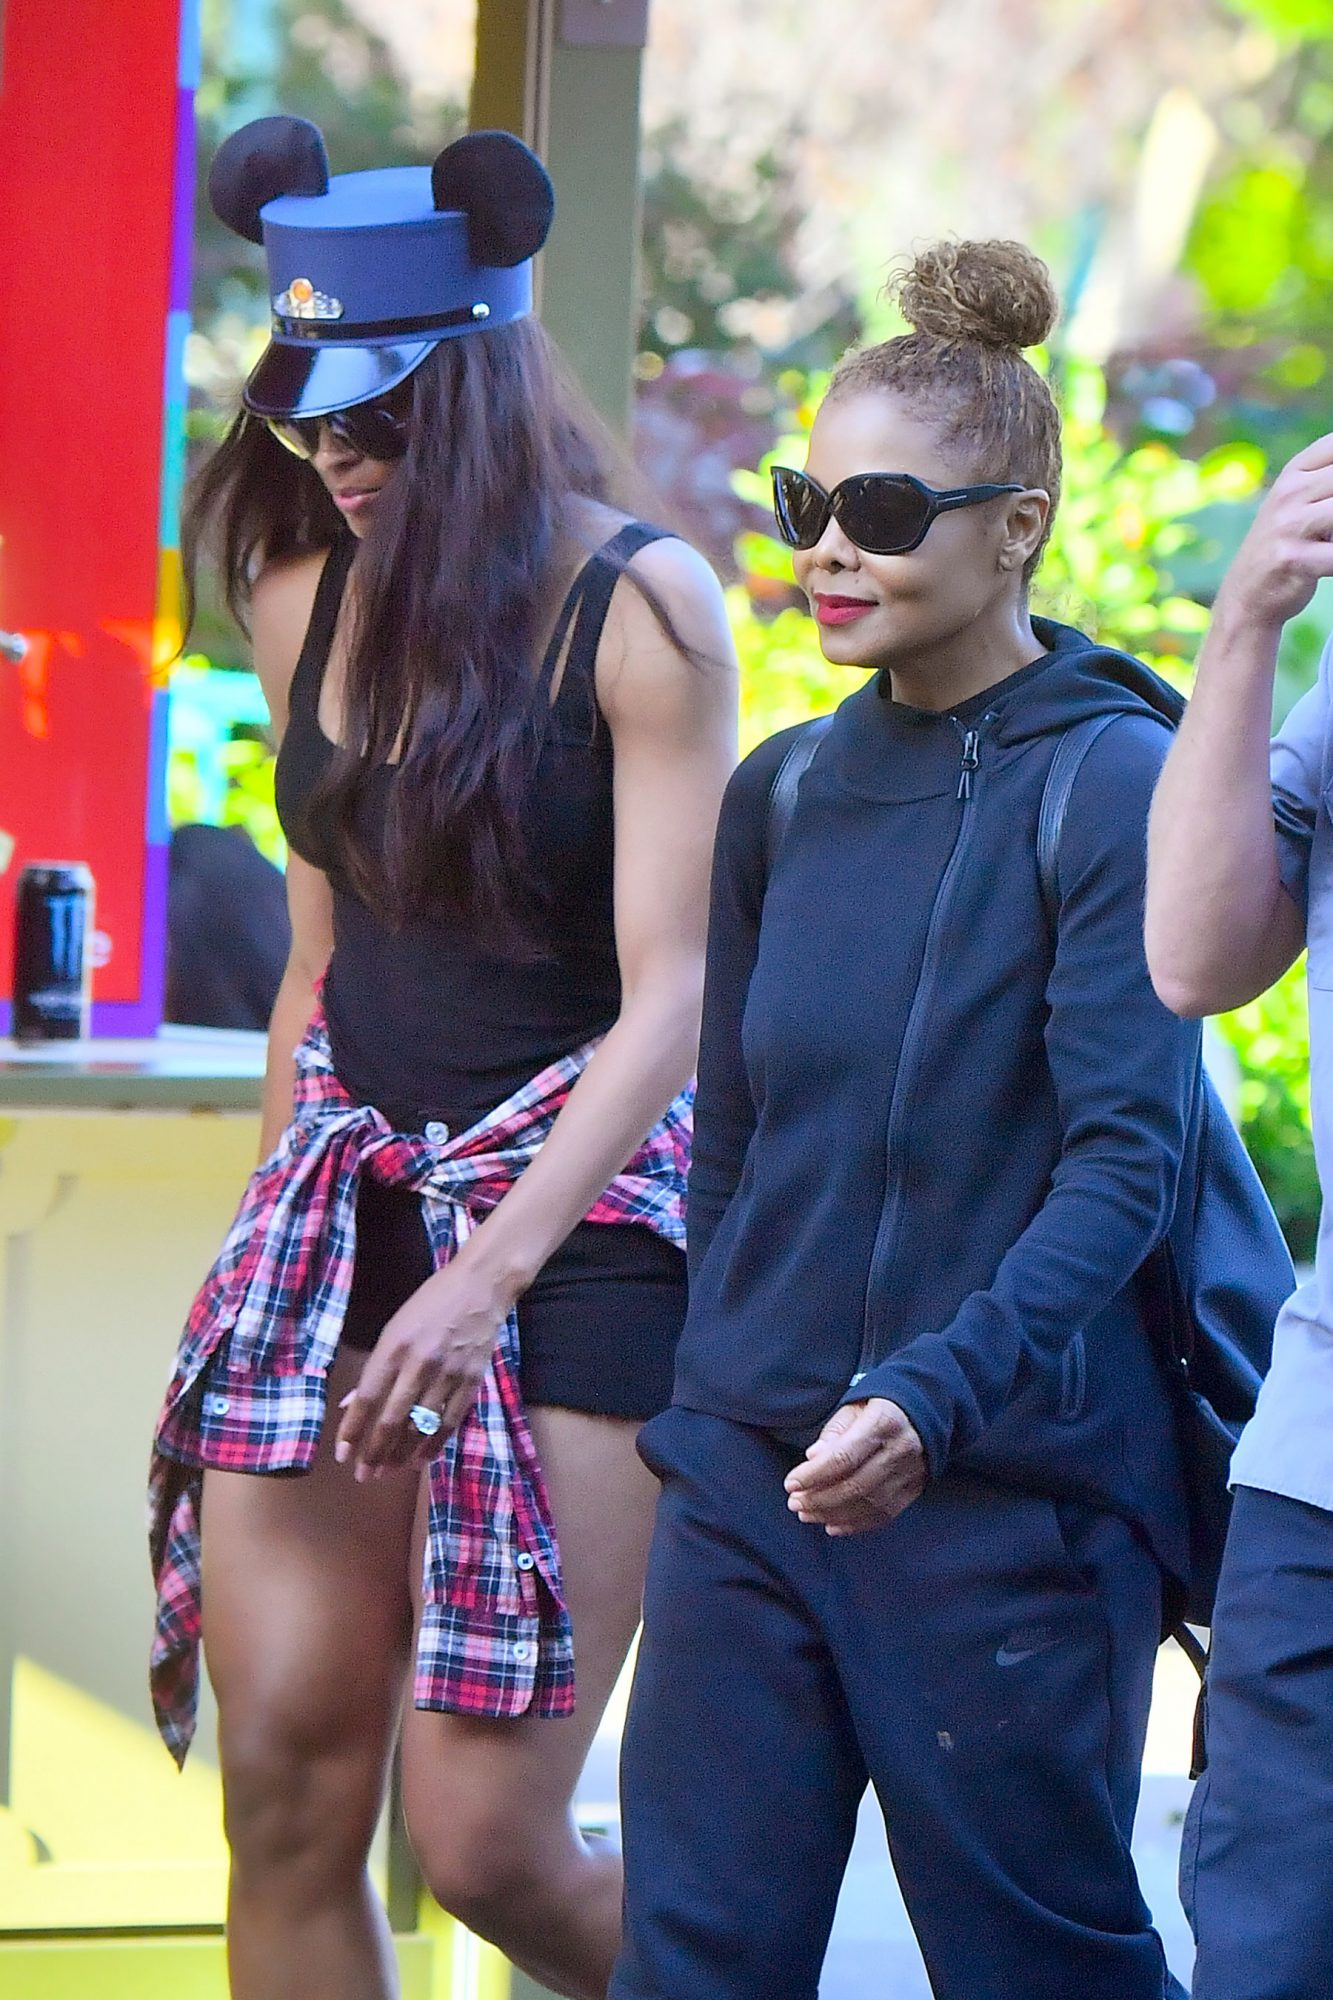 EXCLUSIVE: Janet Jackson and Ciara enjoy themselves with a fun day at the happiest place on earth, Disneyland